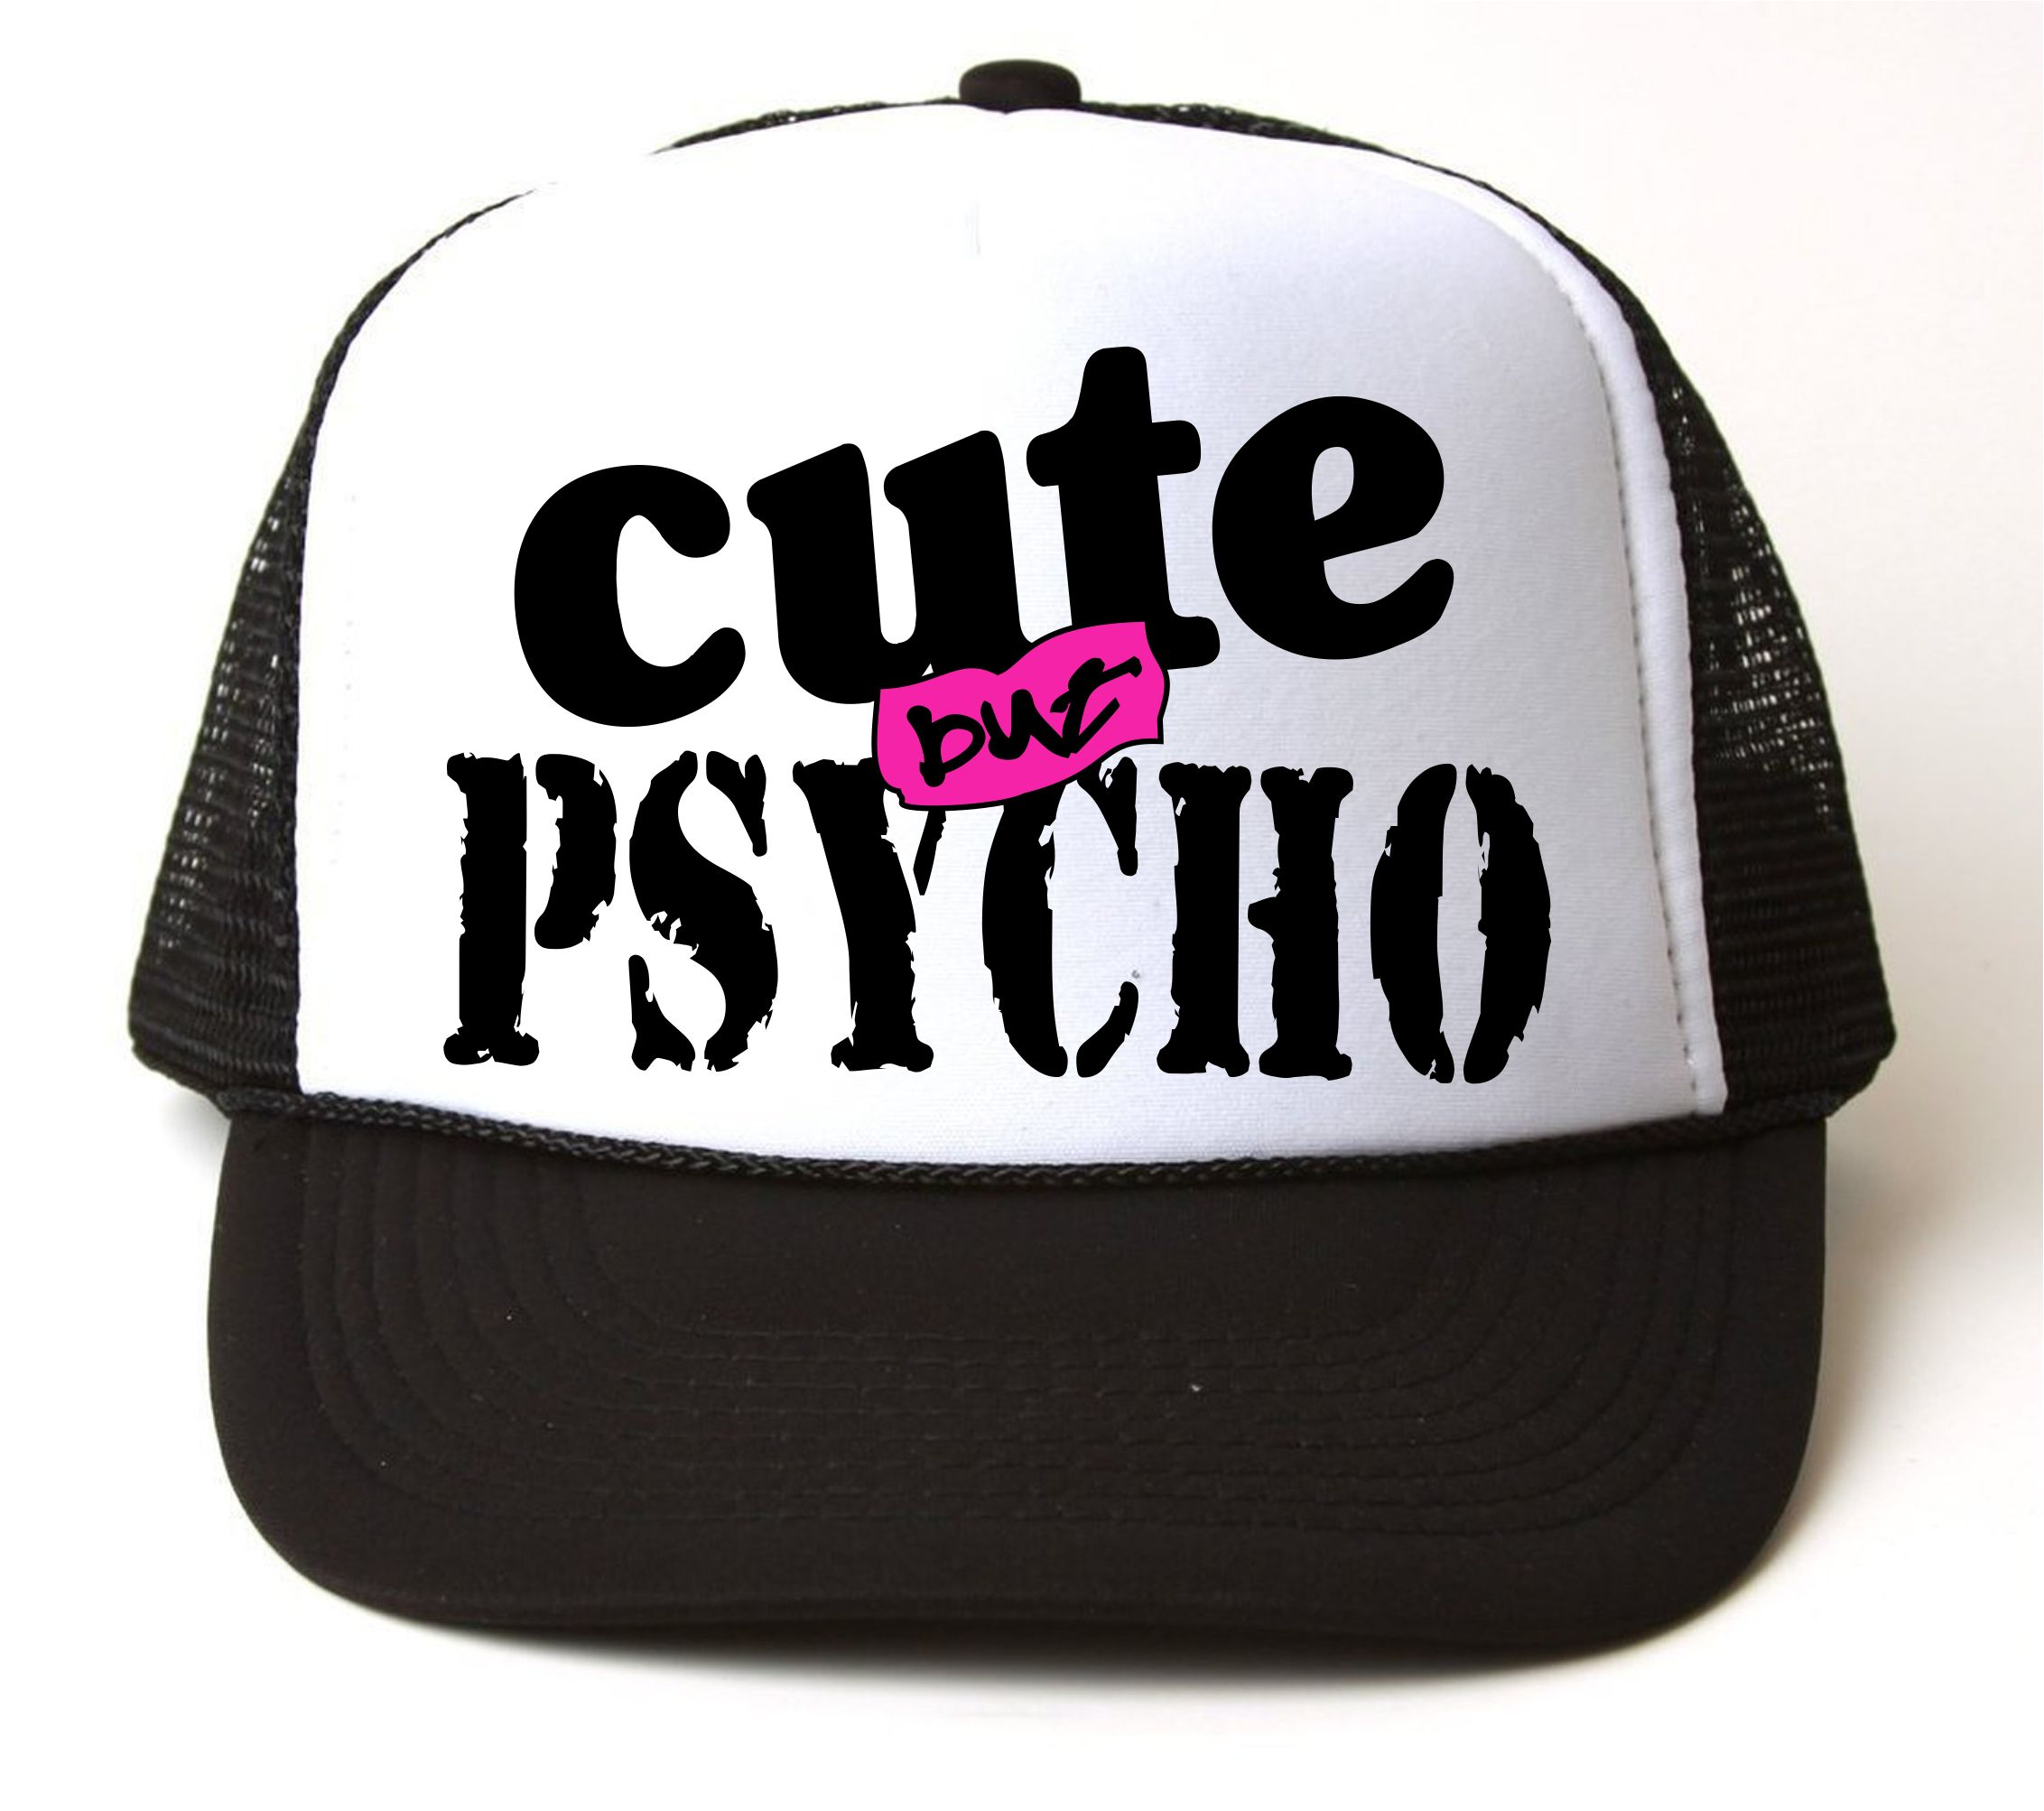 8a752cb415b4e CUTE But PSYCHO Snap Back Cap   123 · CASAS · Online Store Powered ...